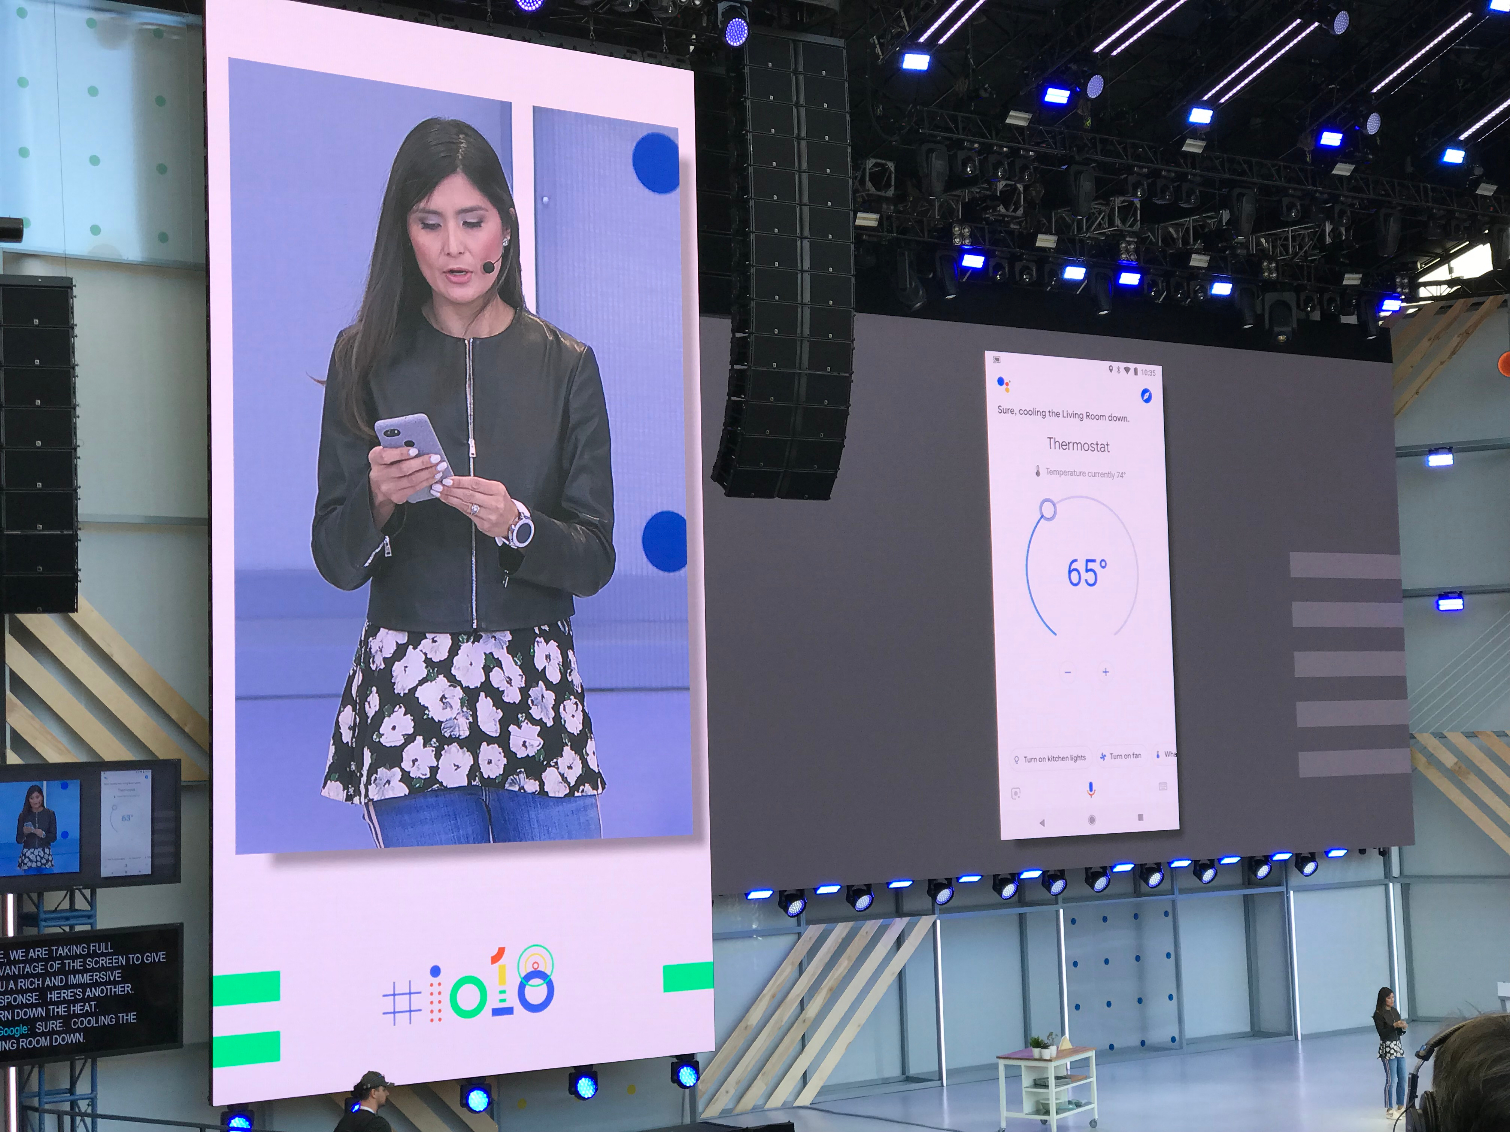 Google I/O 2018: What's New with Google Assistant, Android P